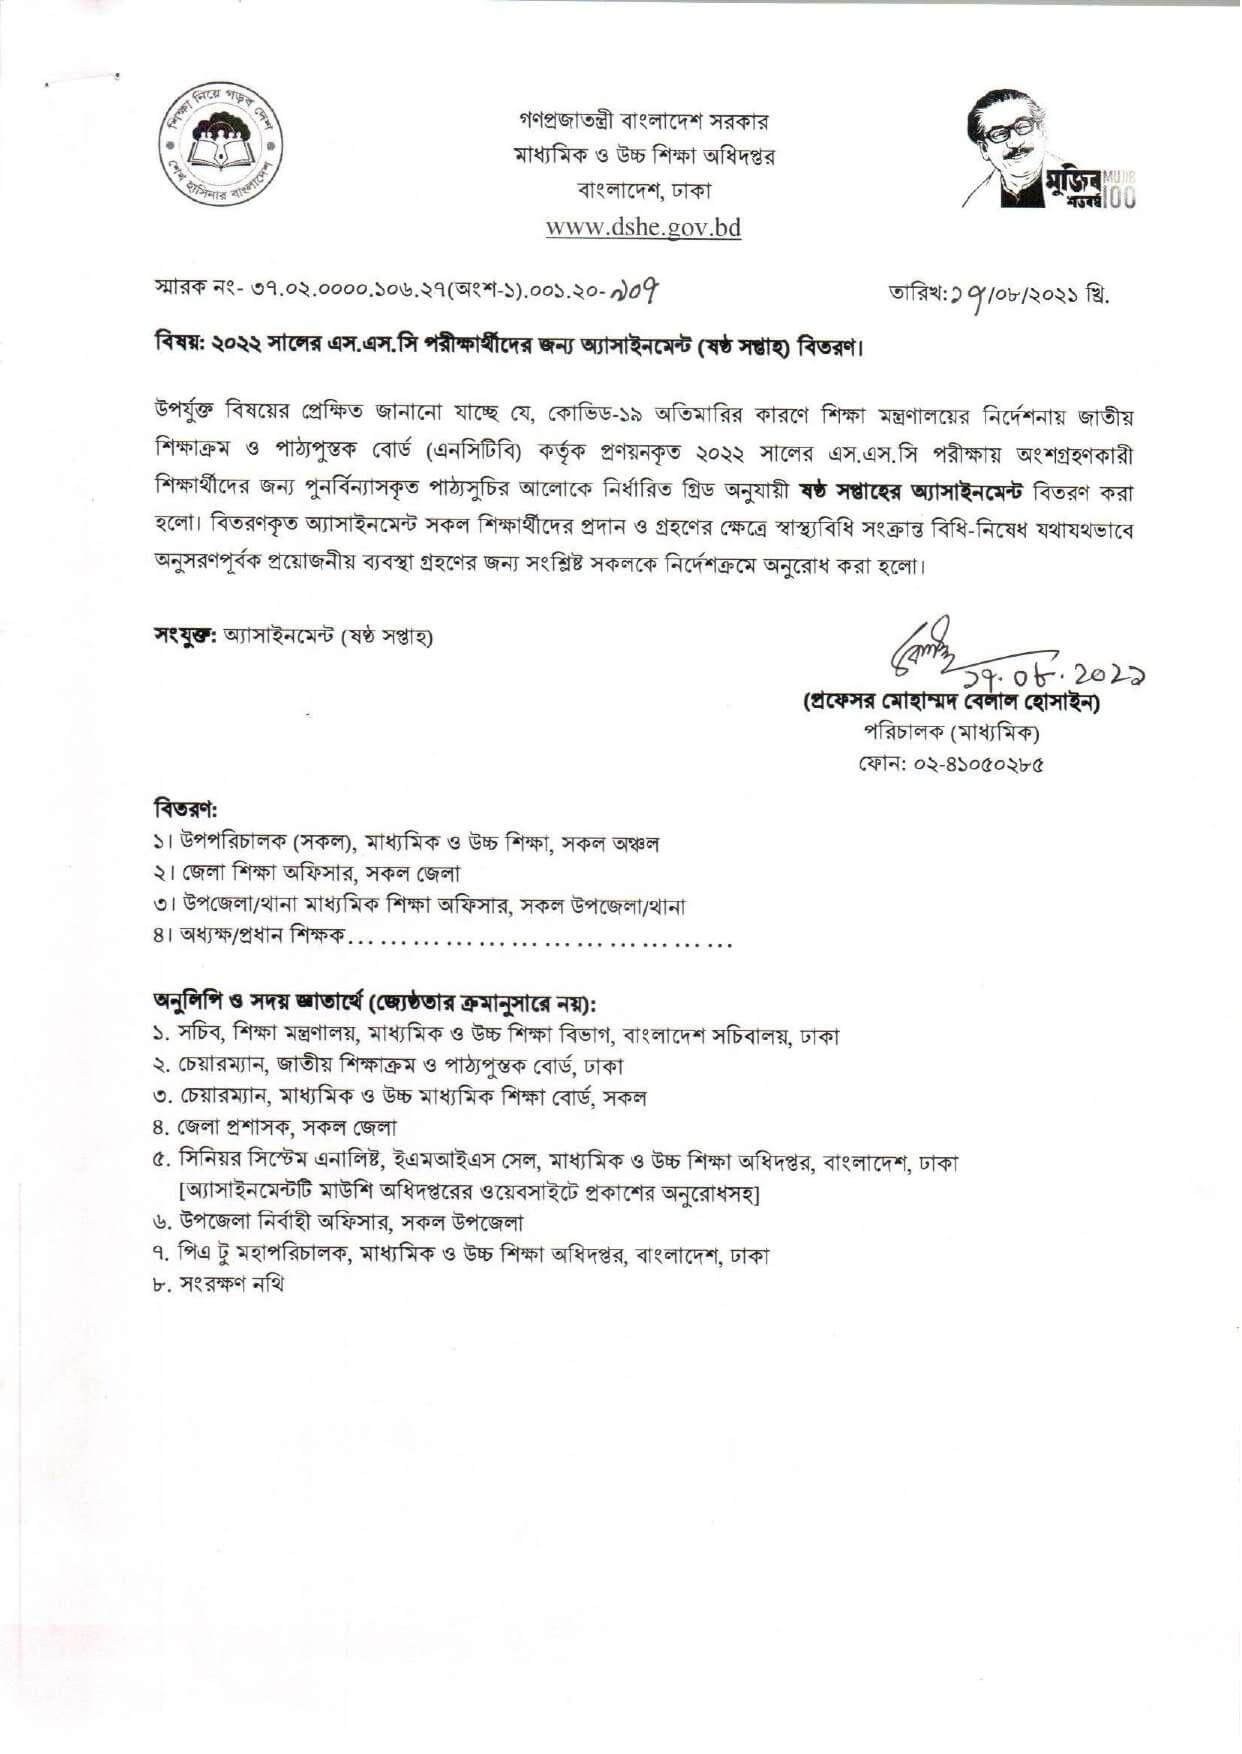 6th Week SSC Assignment 2021 Notice